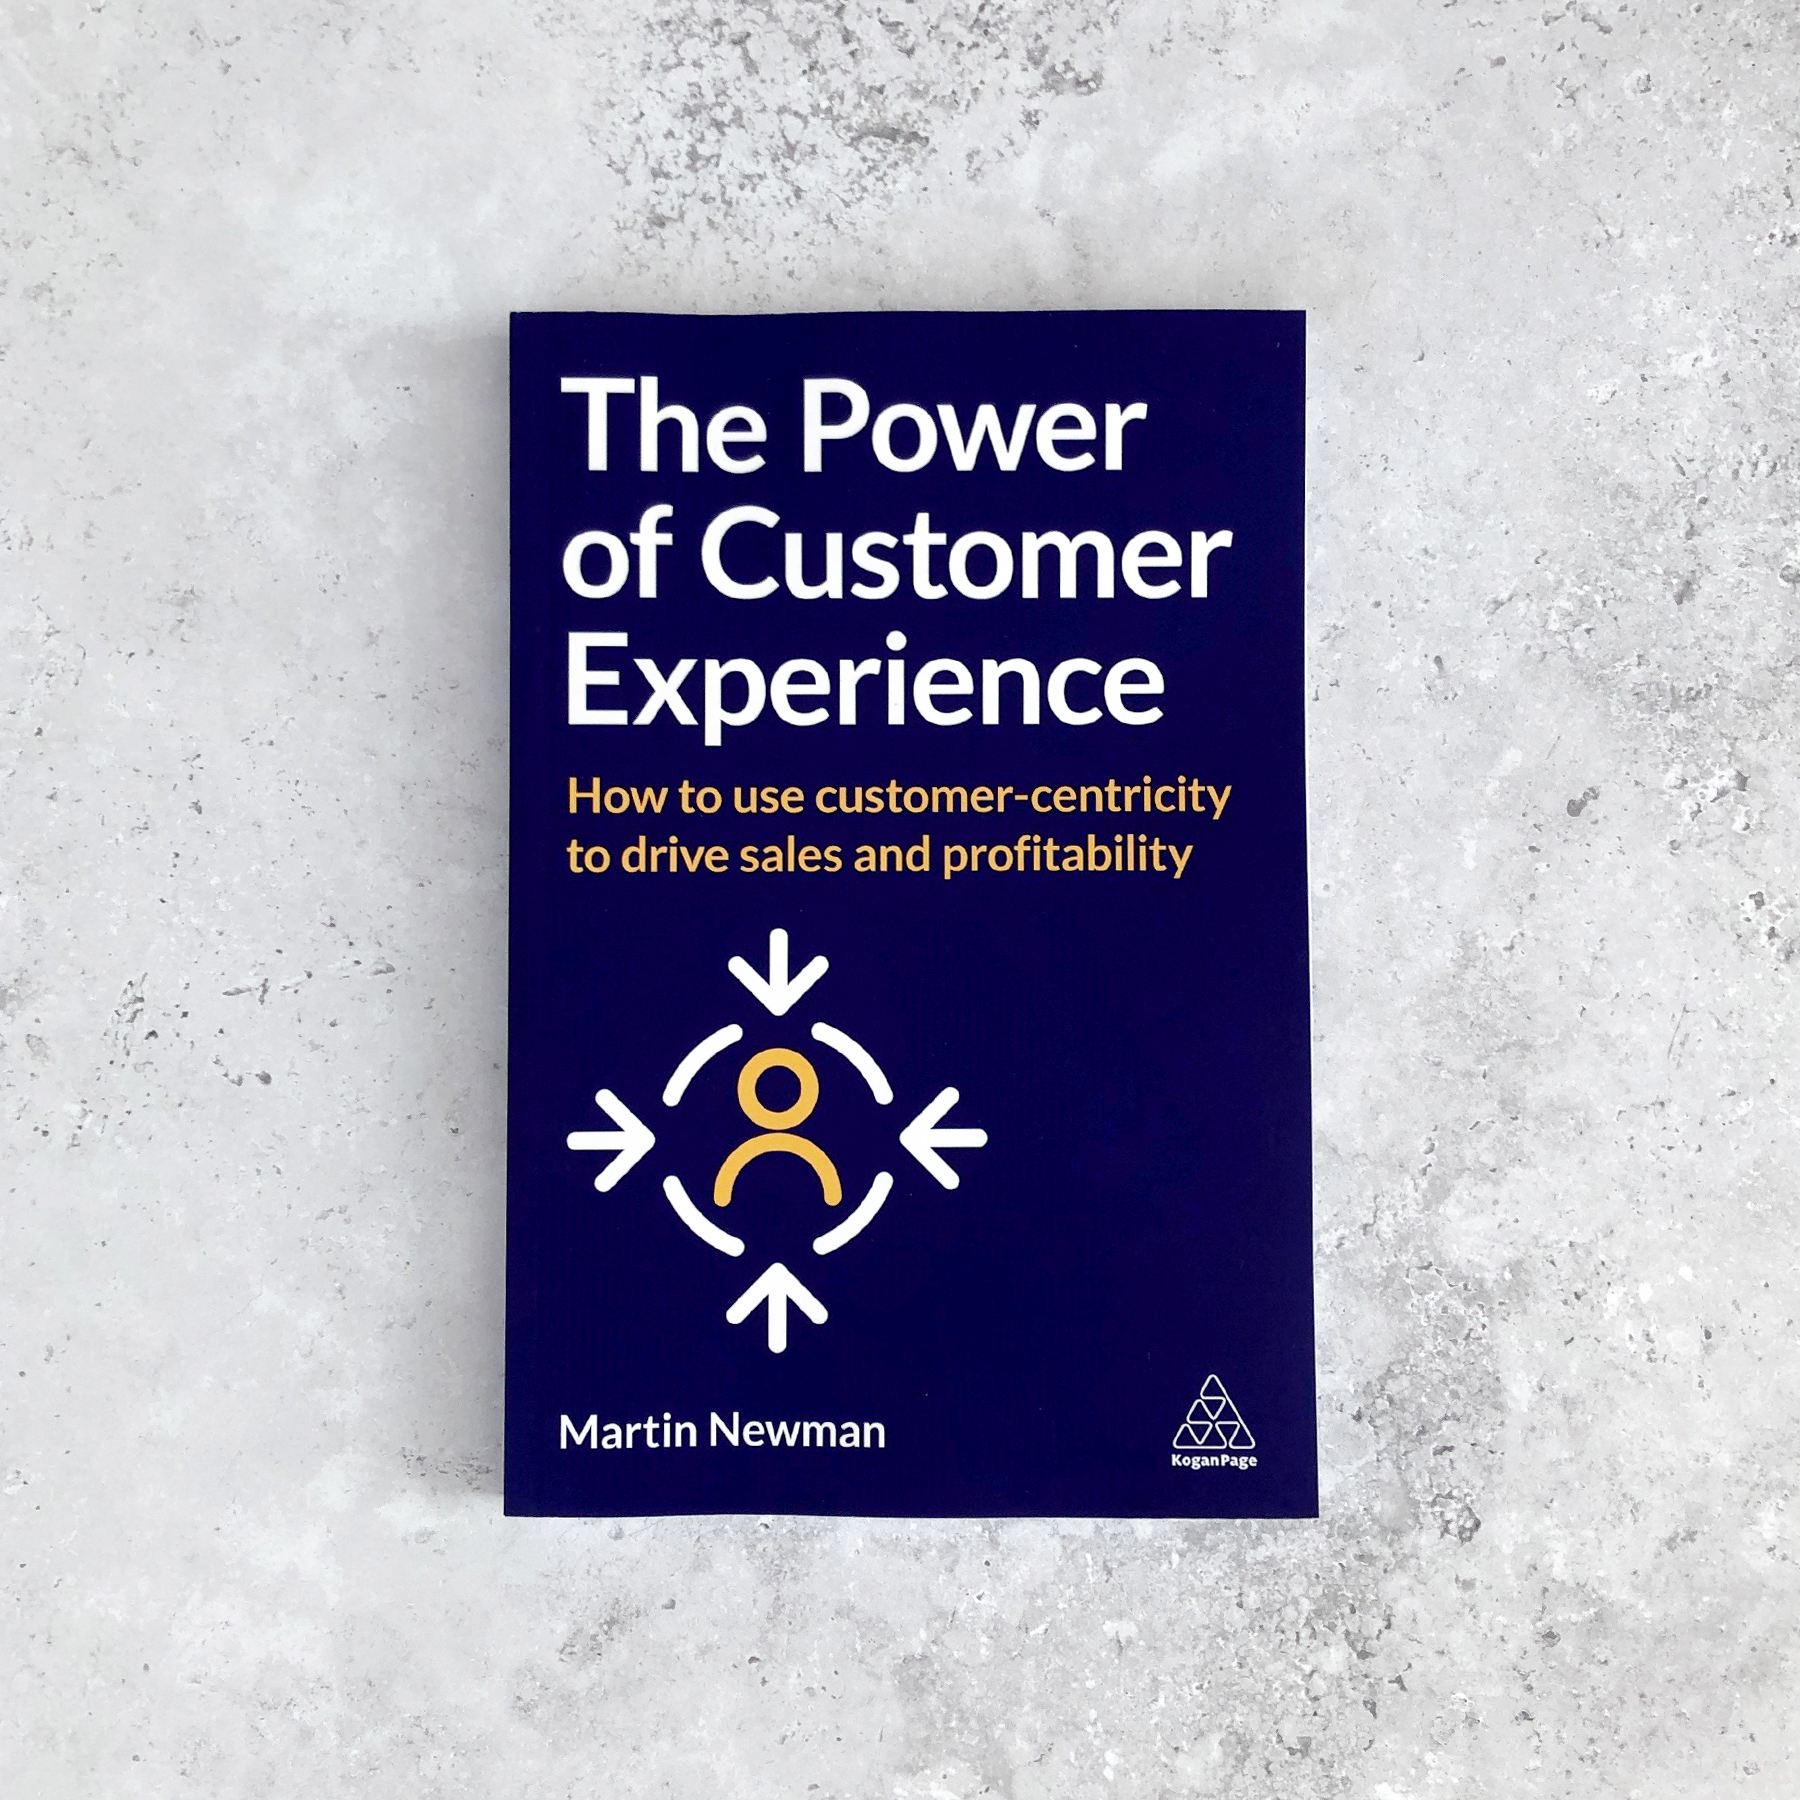 Brand New Book and Mini MBA from Martin Newman Proves Customer Experience is Key to Building a Sustainable Business